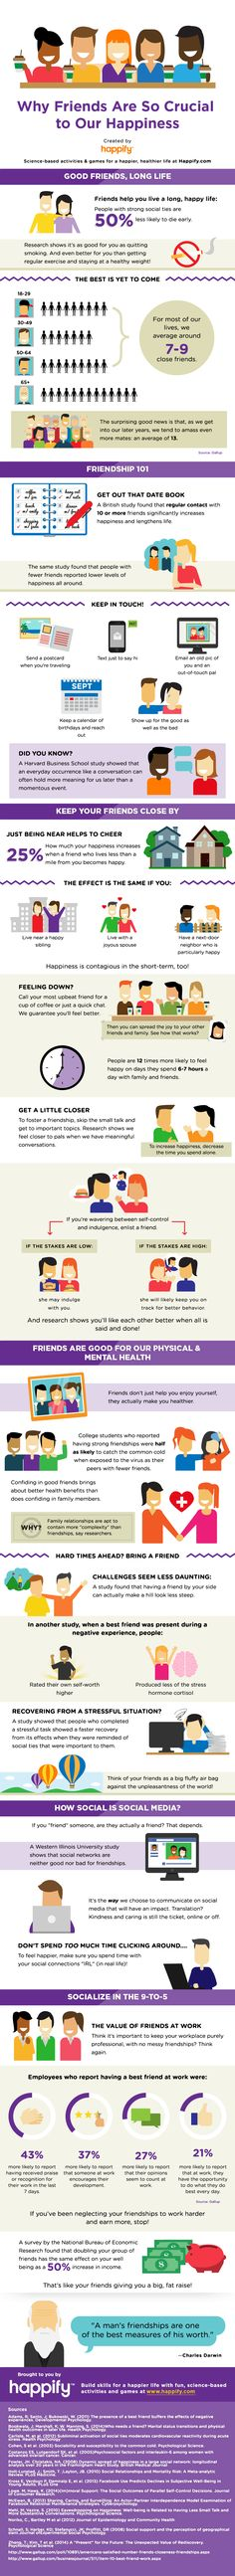 INFOGRAPHIC: Why Friends Are Key to Our Happiness, According to Science